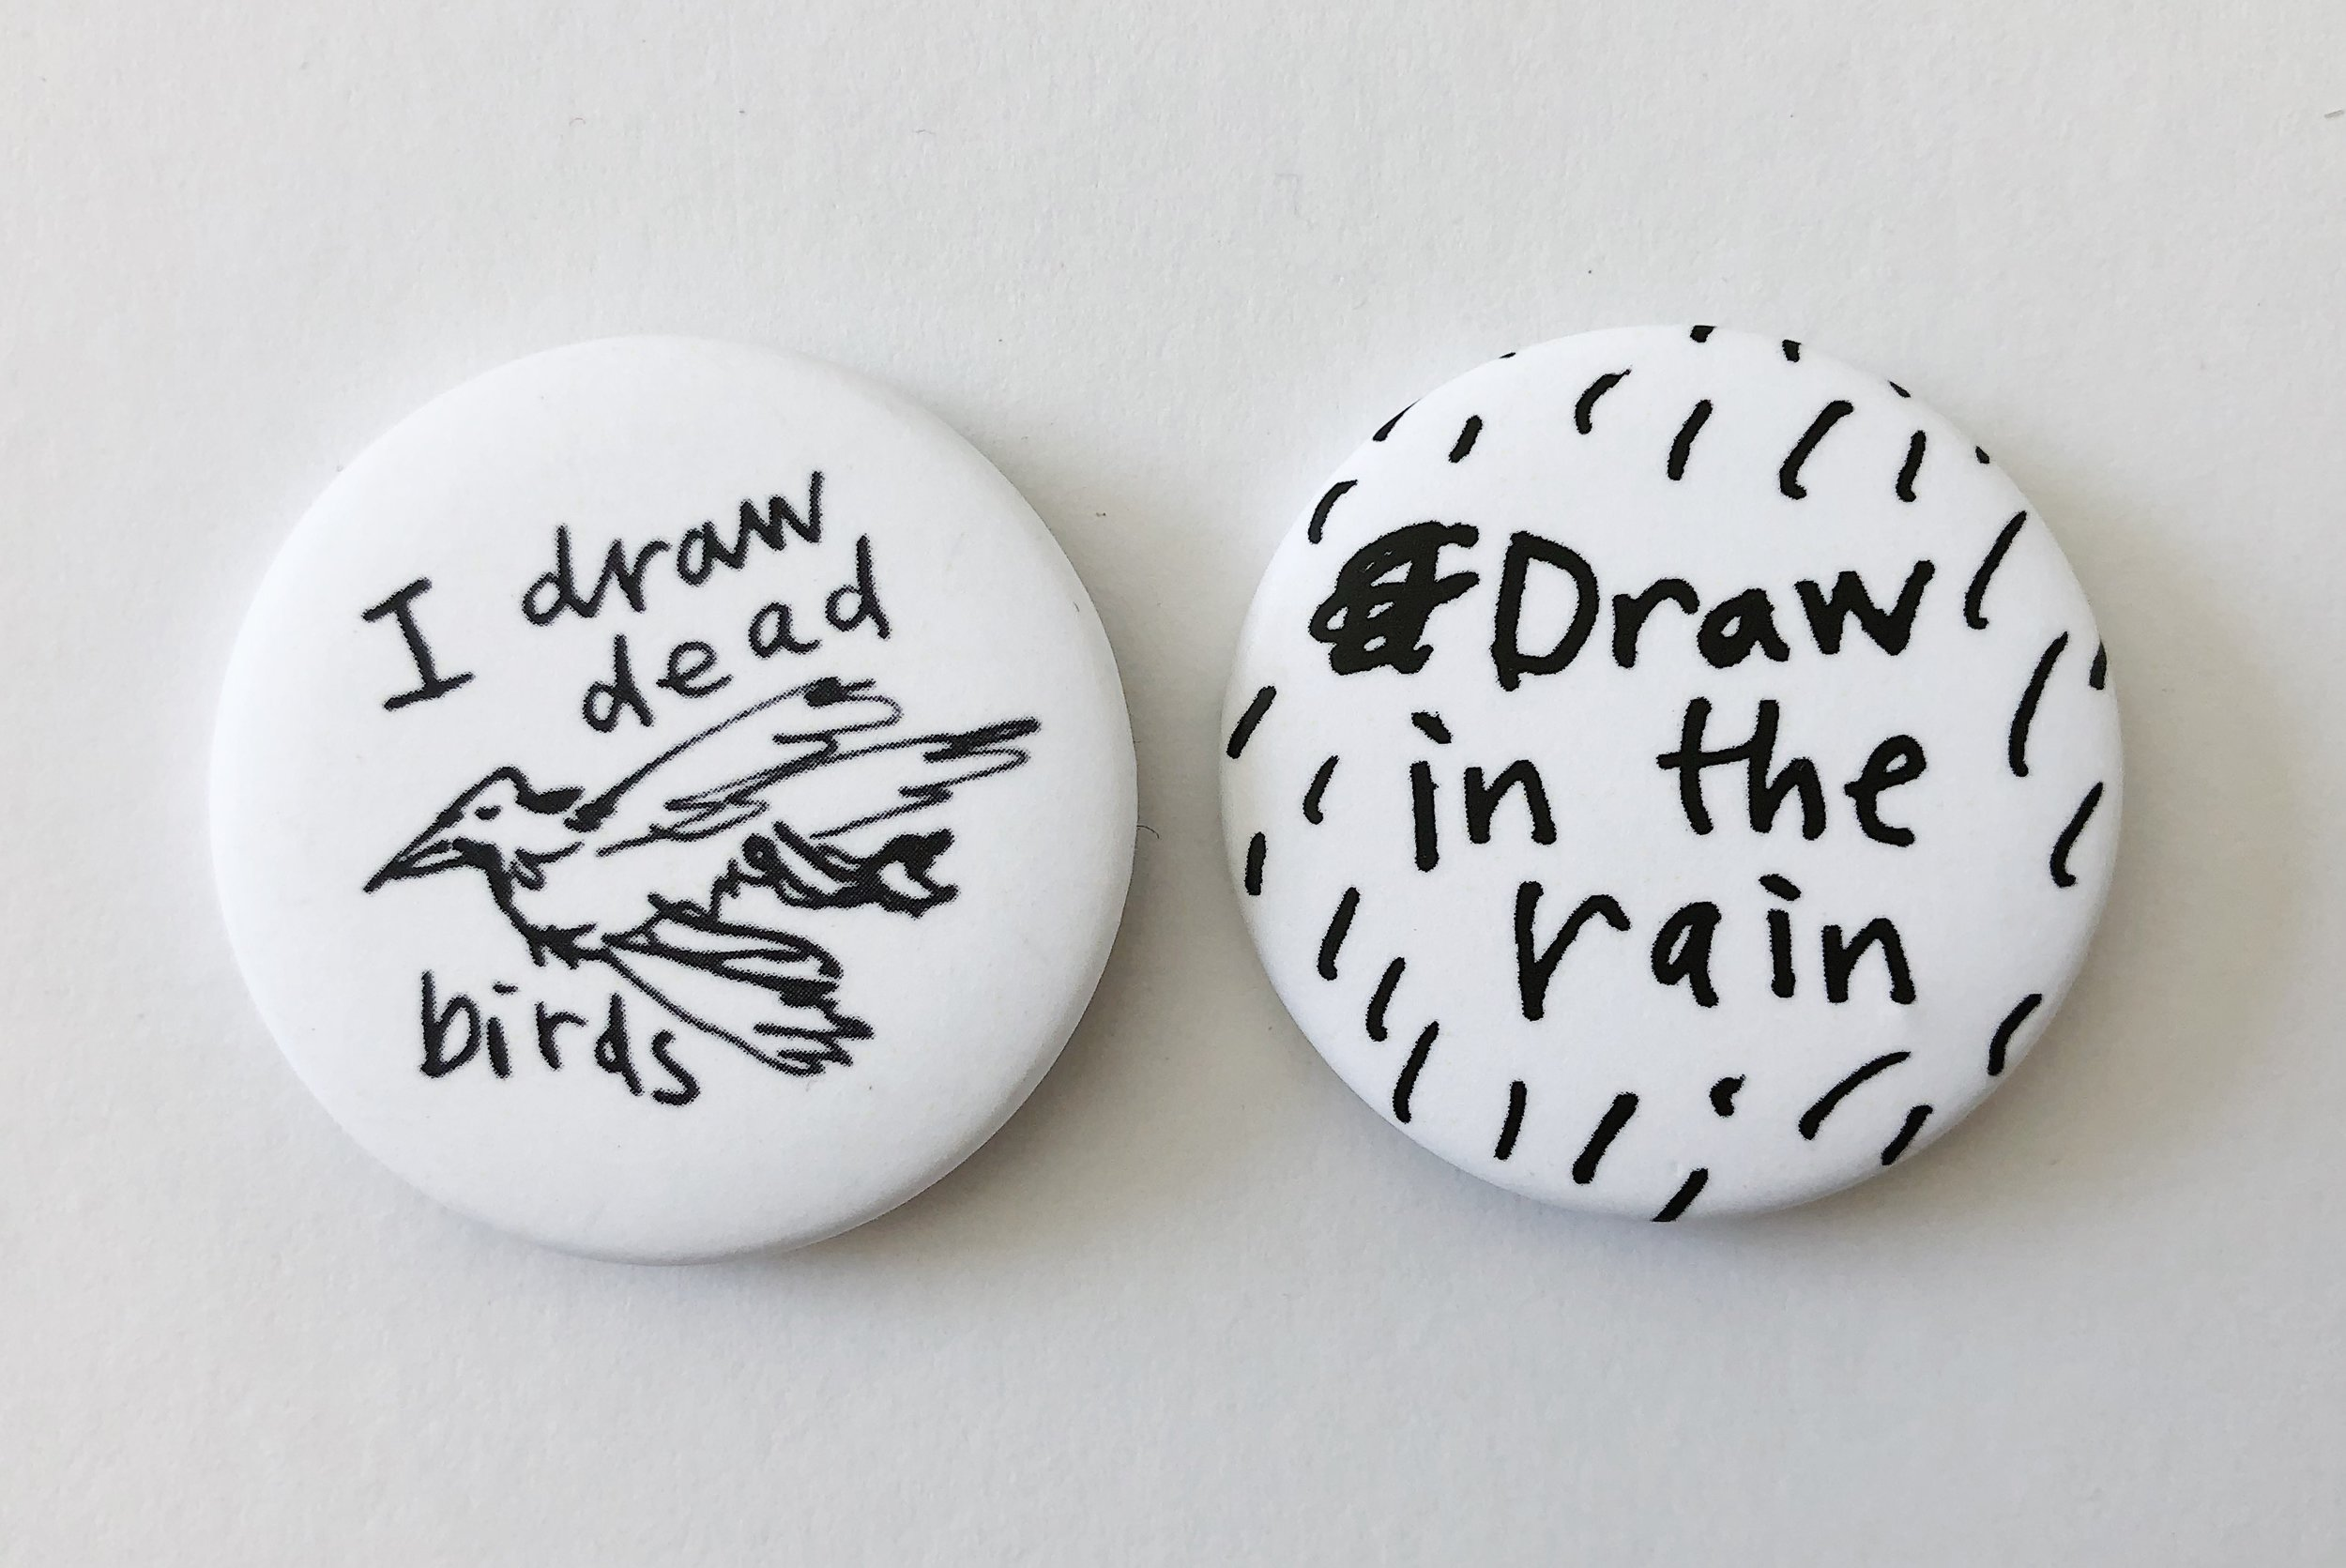 I draw dead birds and Draw in the rain badges.